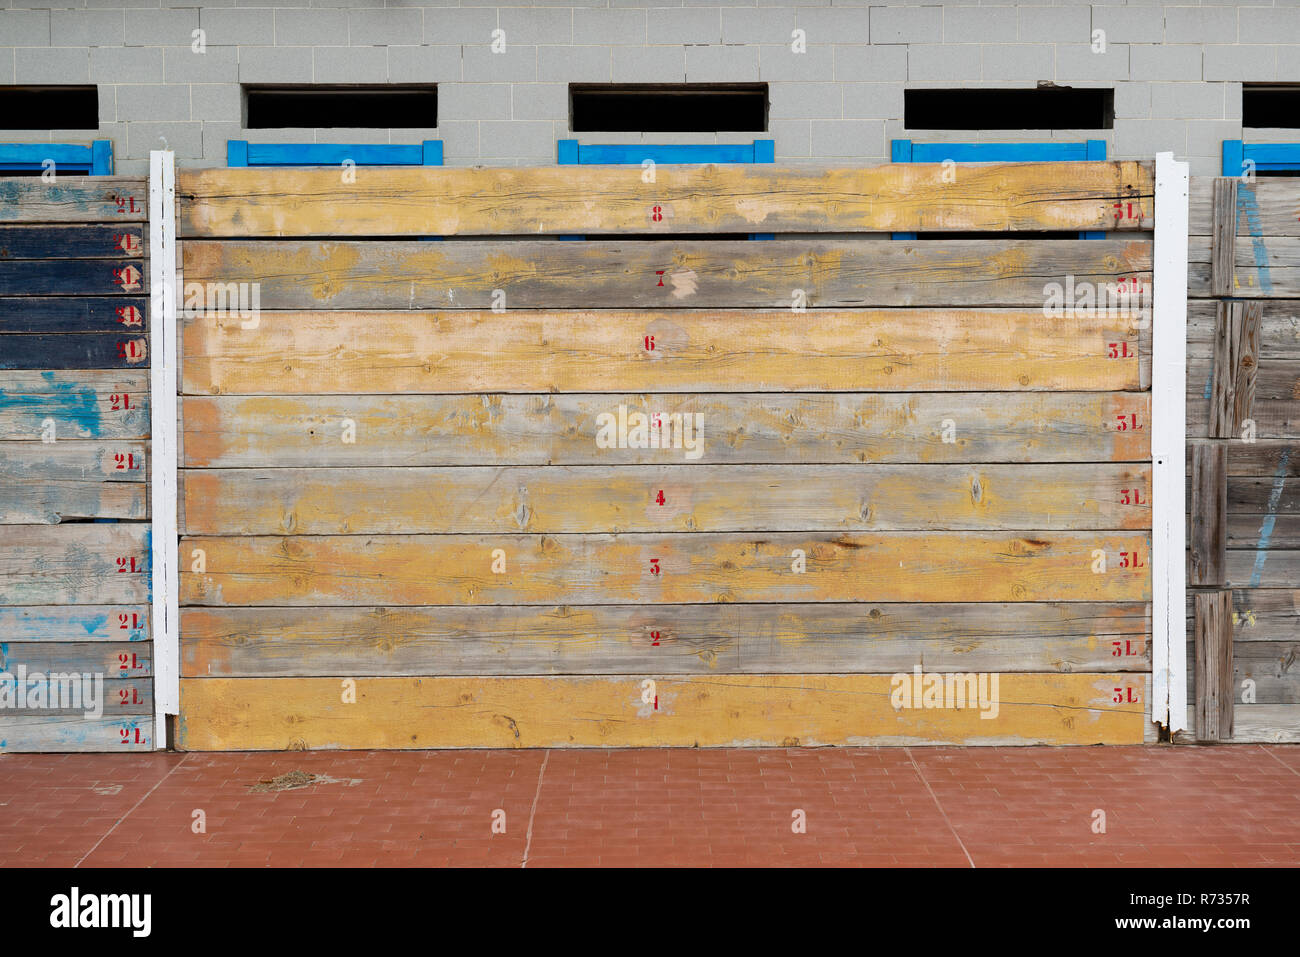 Facades covered with wooden planks to protect against winter weather and storms of the sea, and by possible malicious thieves - Stock Image